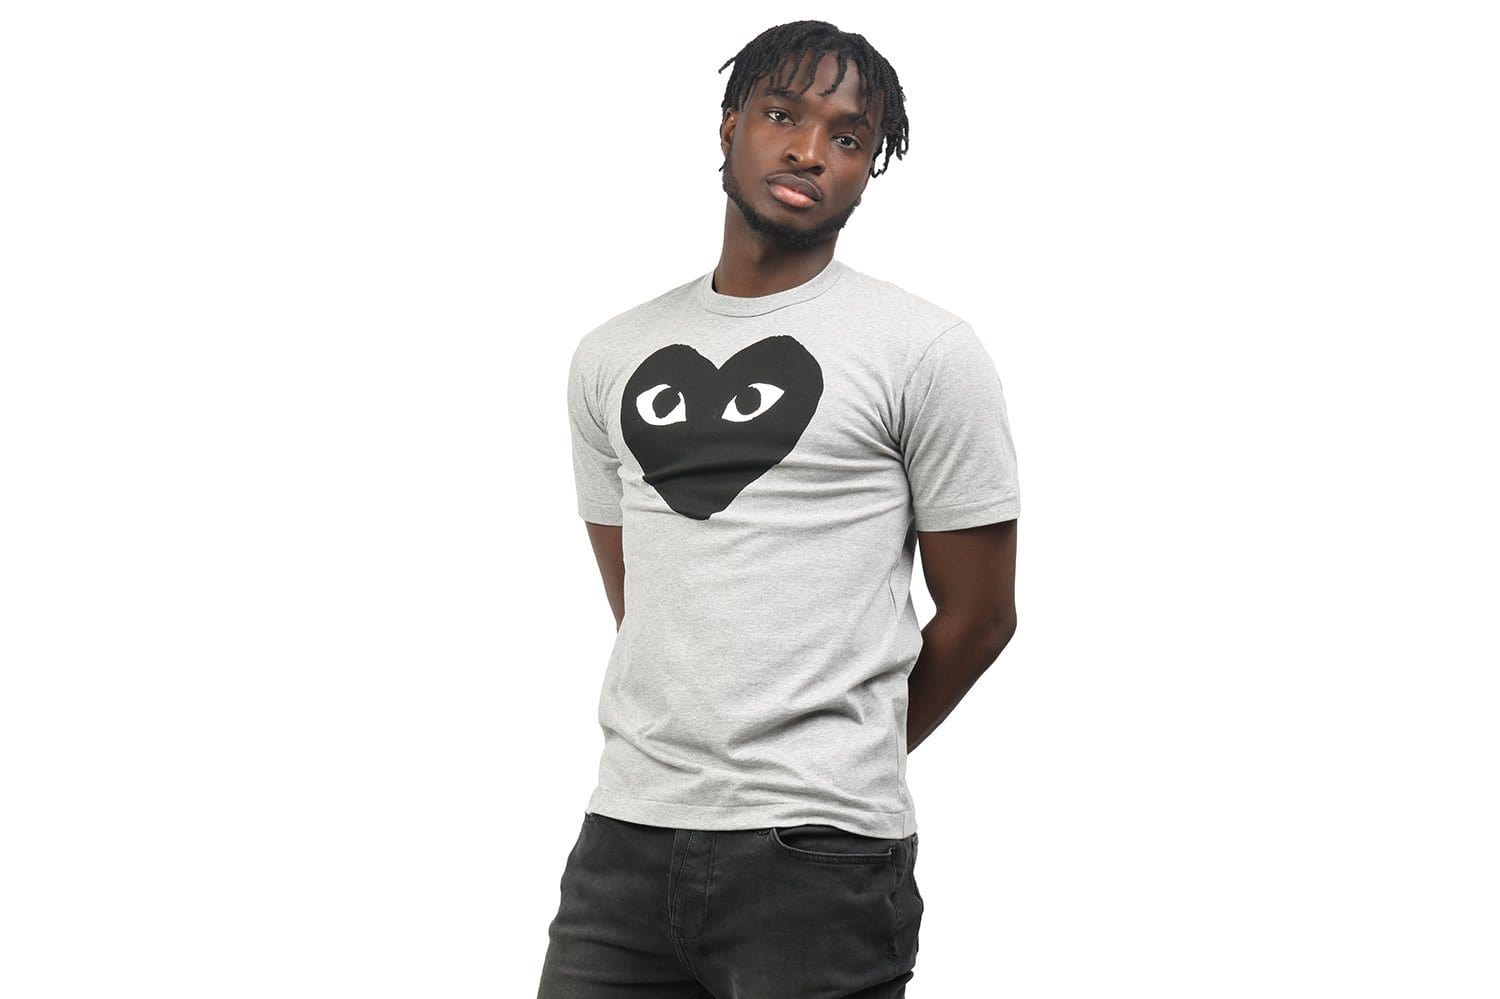 BIG HEART TEE GREY/BLACK MENS SOFTGOODS COMME DES GARCONS